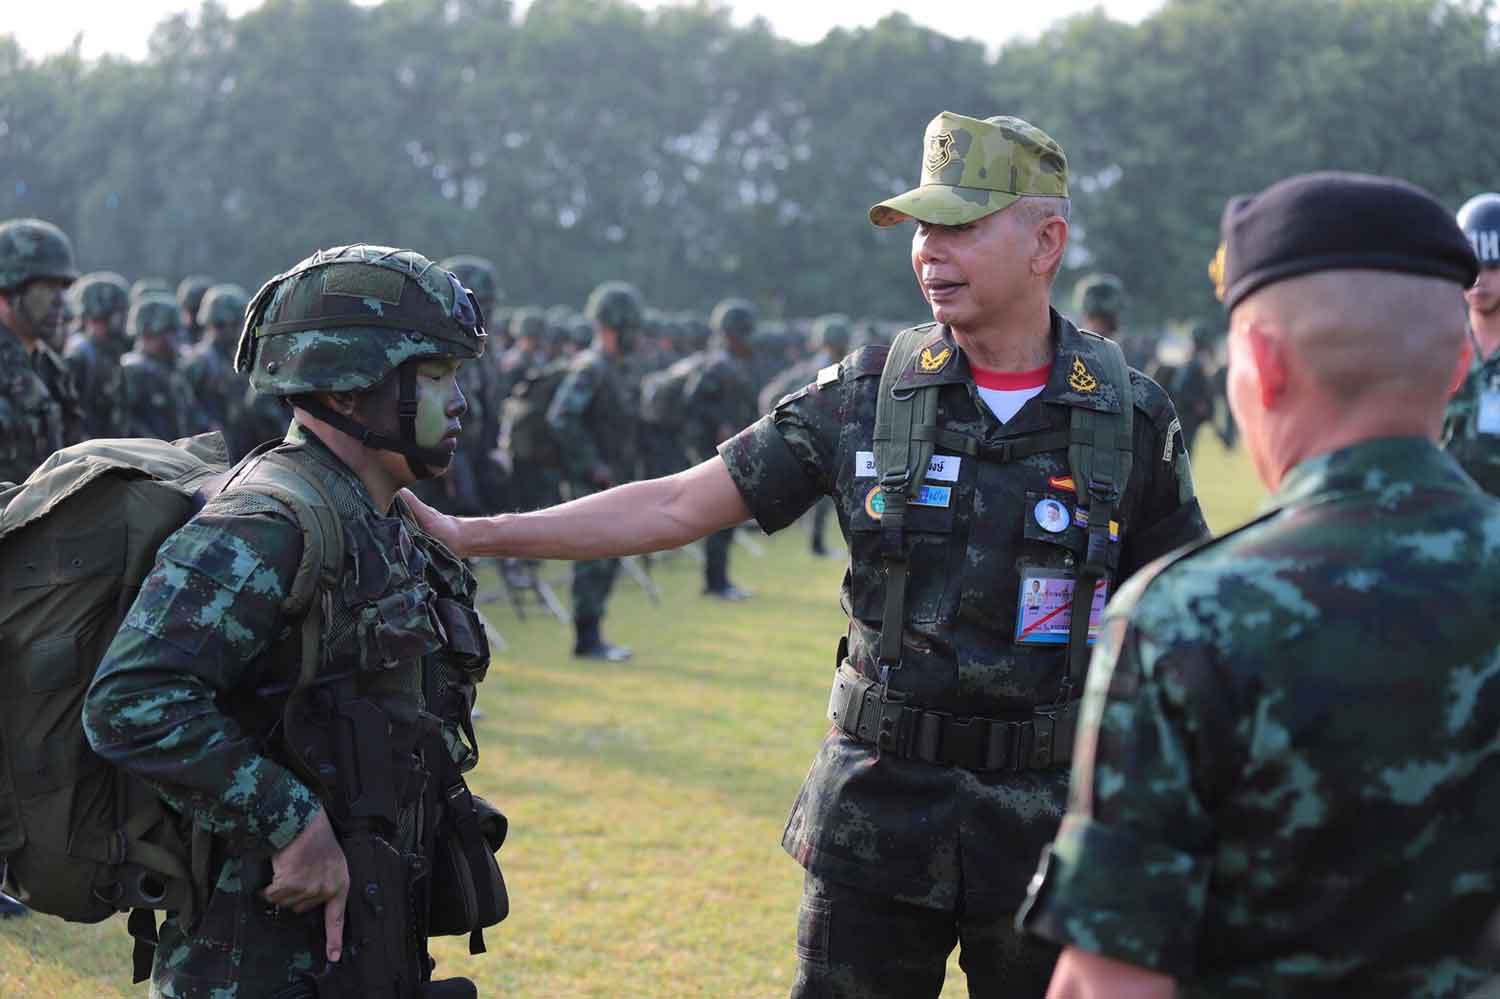 Army chief Gen Apirat Kongsompont reviews the readiness of a rapid deployment force in Kanchanaburi province on Monday morning. (Photo supplied)